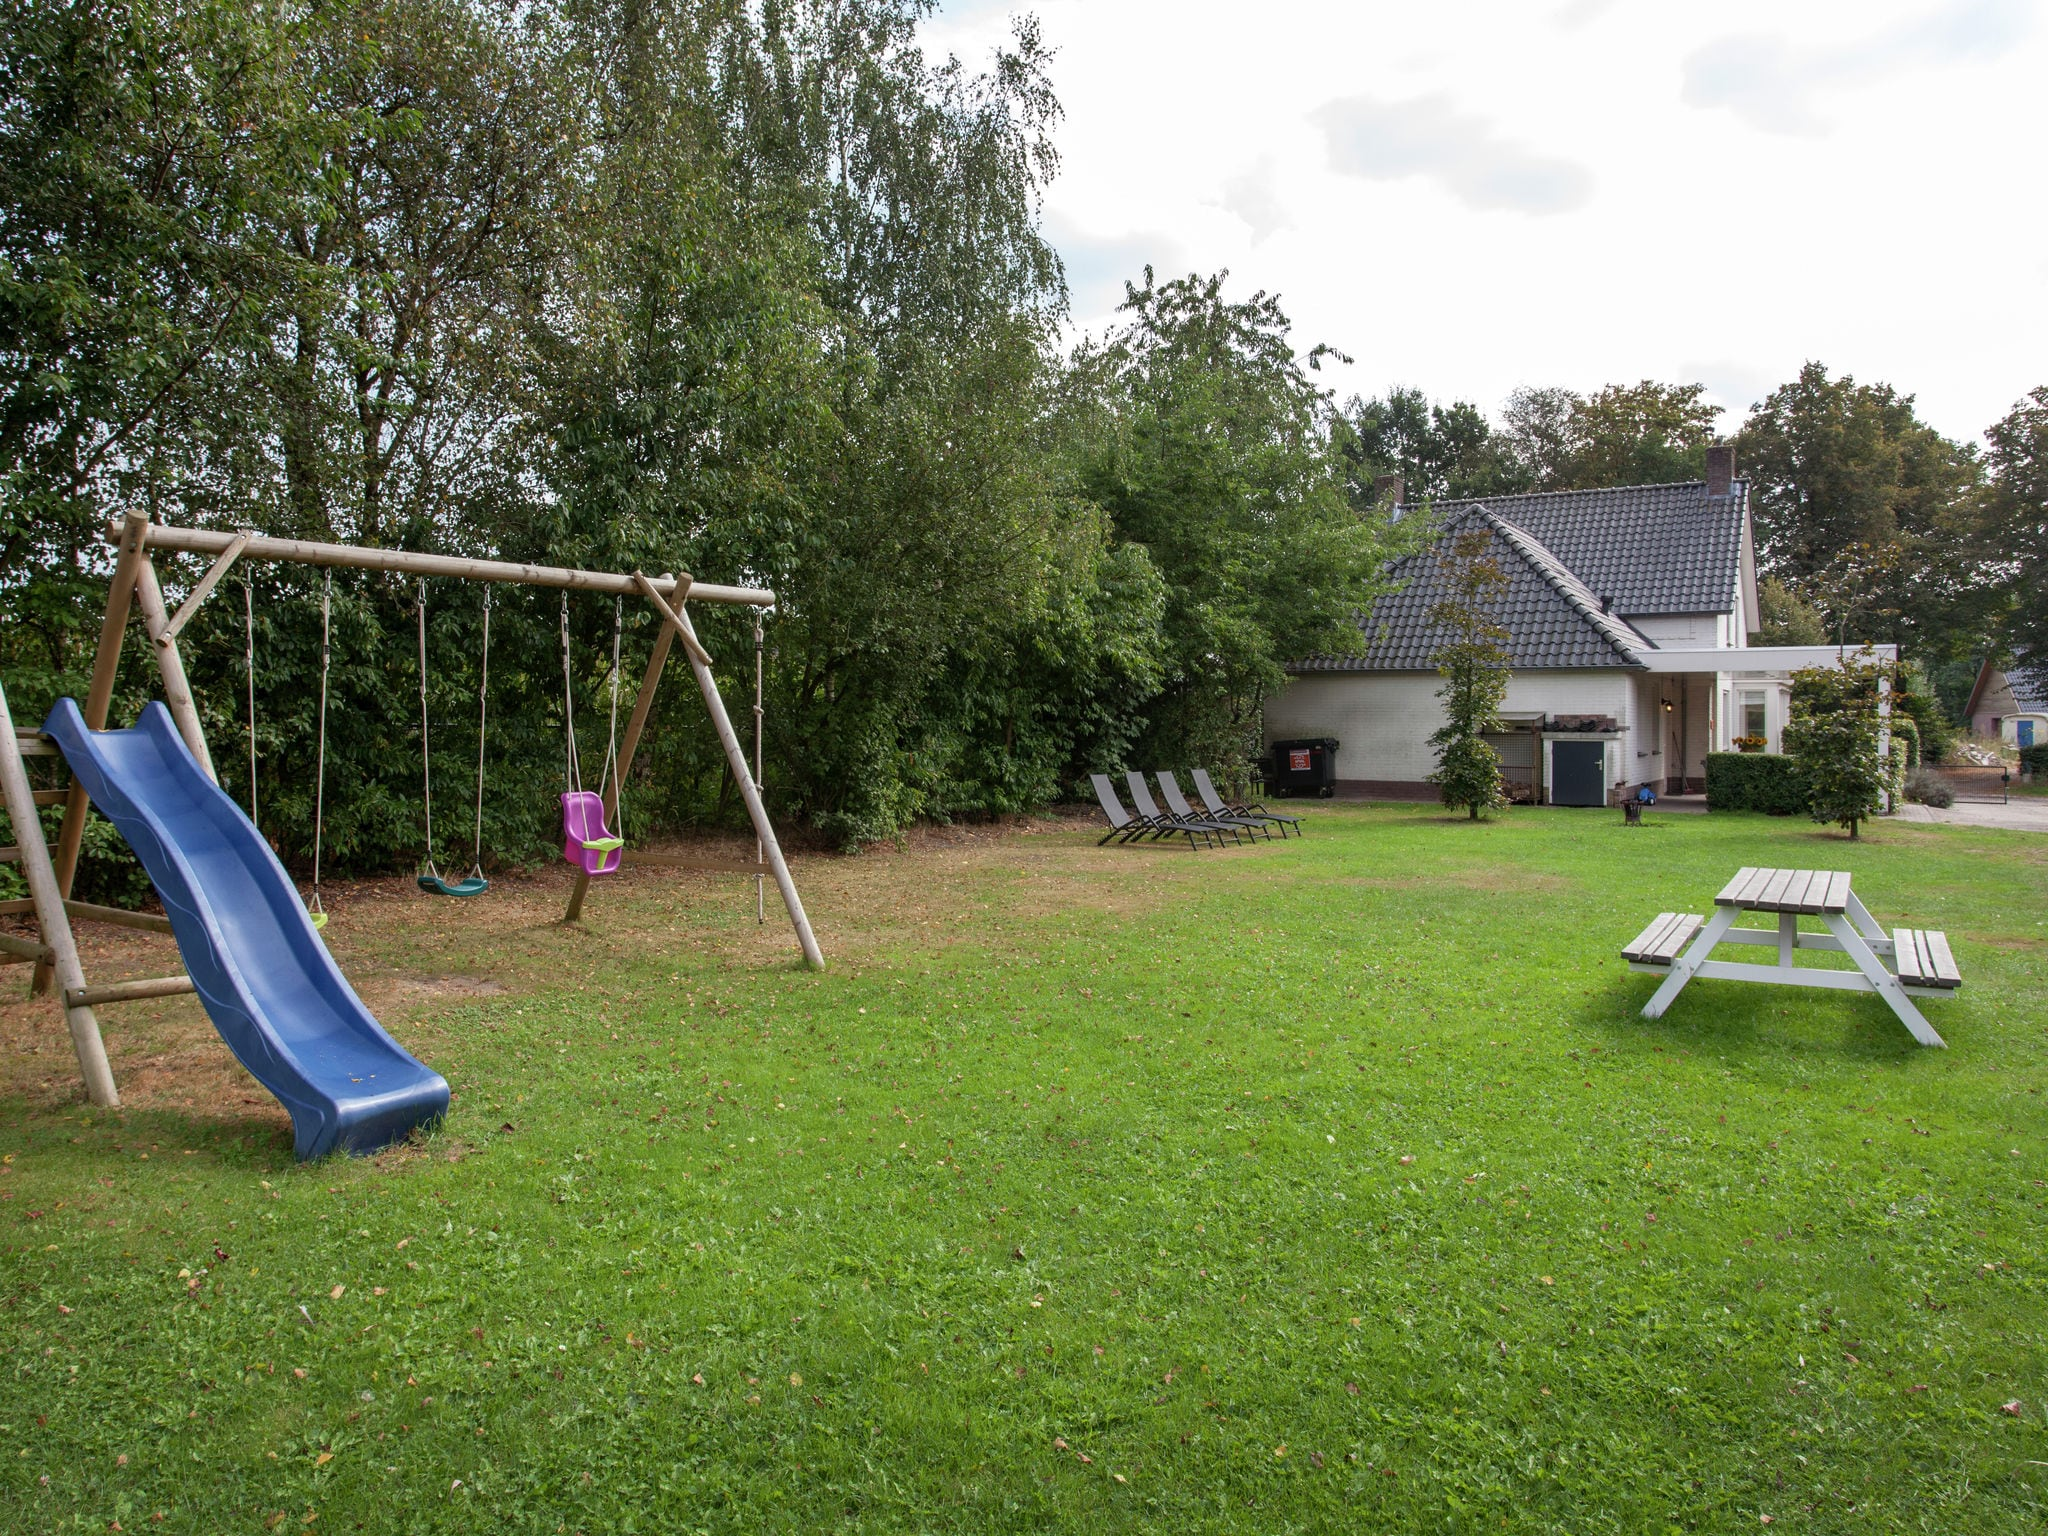 Holland | Noord-Brabant | Holiday home 't Witte Huis | all year | GardenSummer